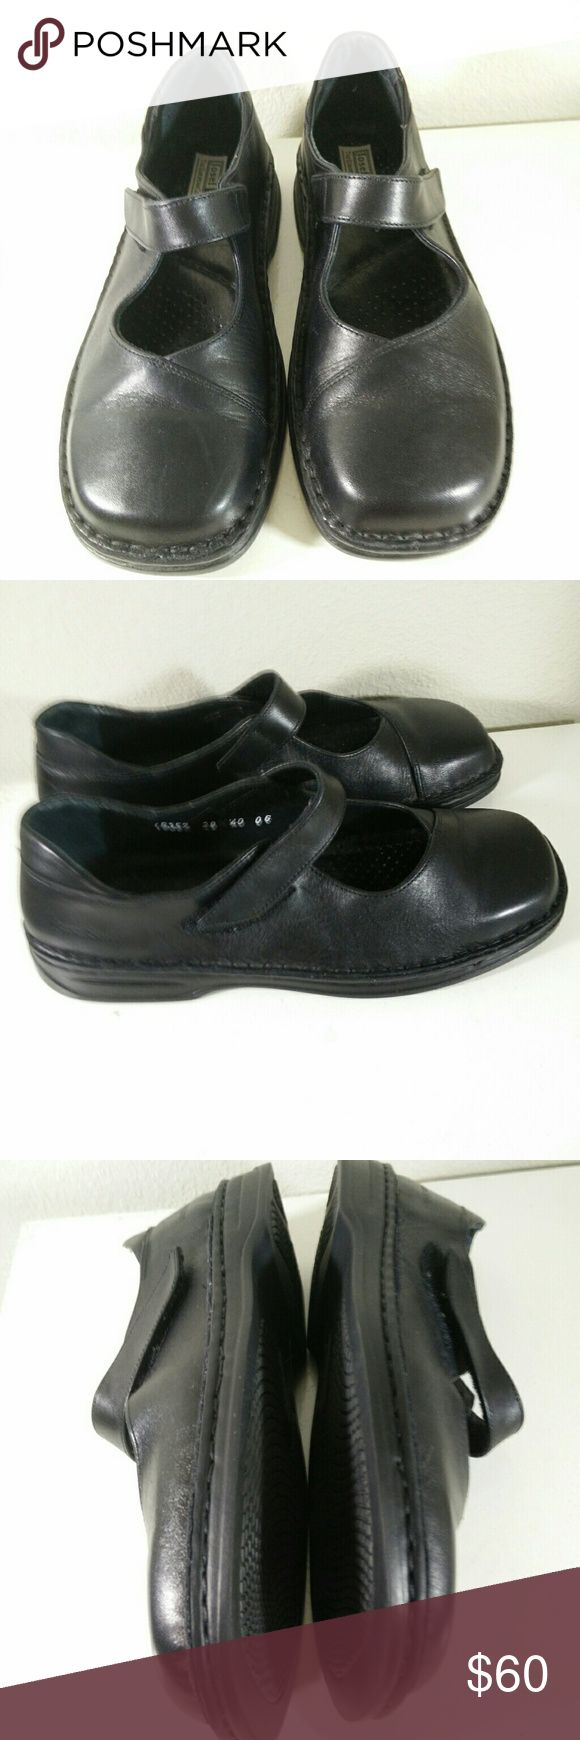 JOSEF SEIBEL Leather Mary Jane Comfort Flats Awesome shoes - extremely comfortable - in near new condition - perfect for summer... Josef Seibel Shoes Flats & Loafers